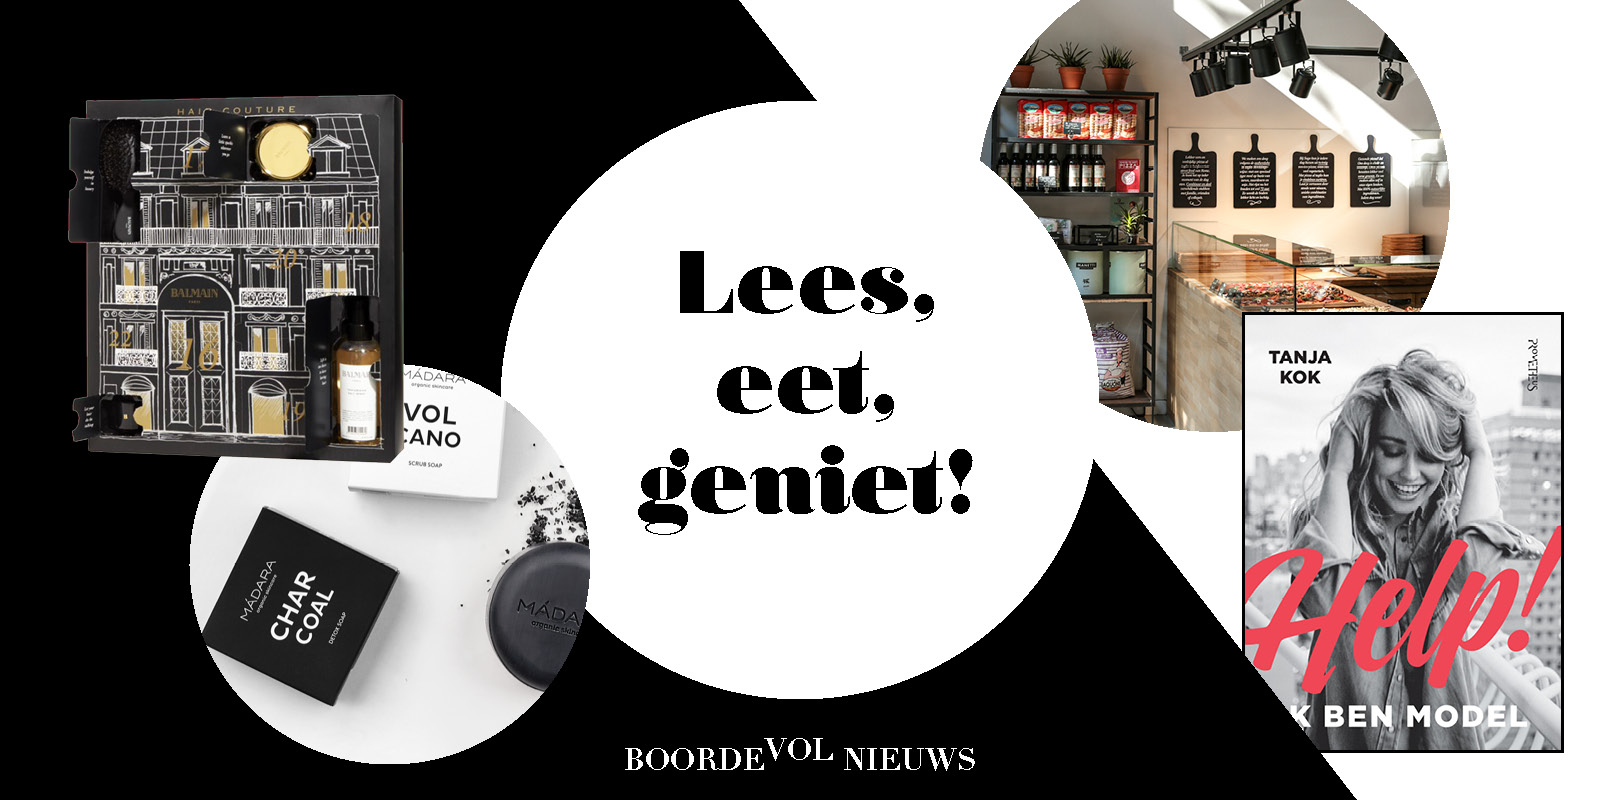 Boordevol nieuws - tips - tricks - todo